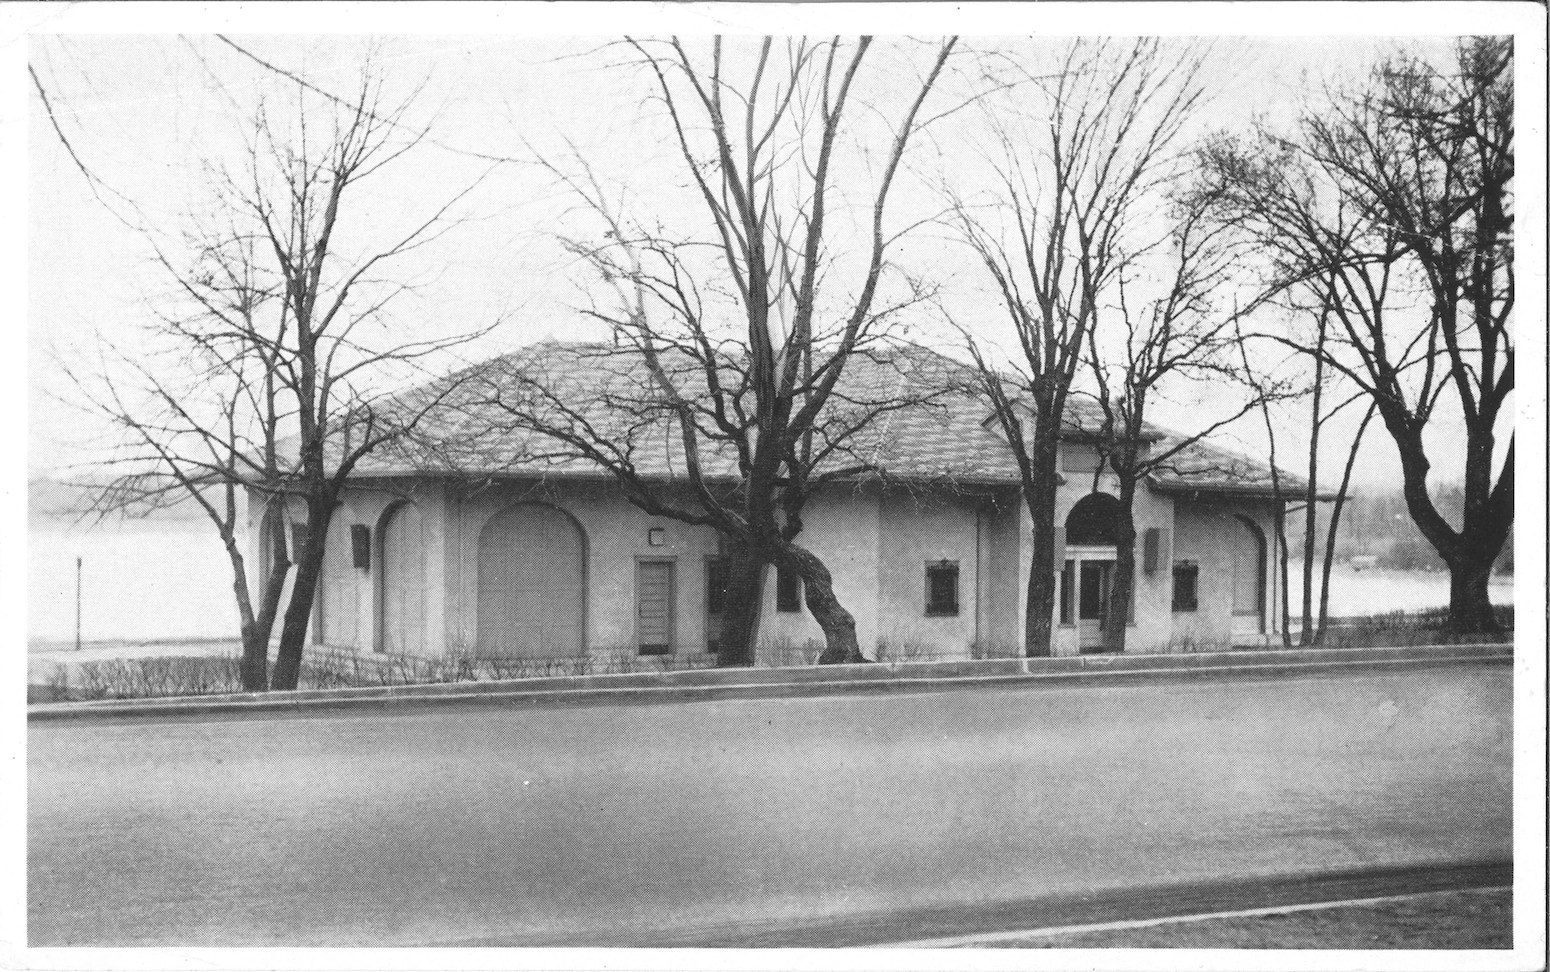 A MPRB archival photo shows the pavilion sometime in the 1930s or '40s. Submitted image